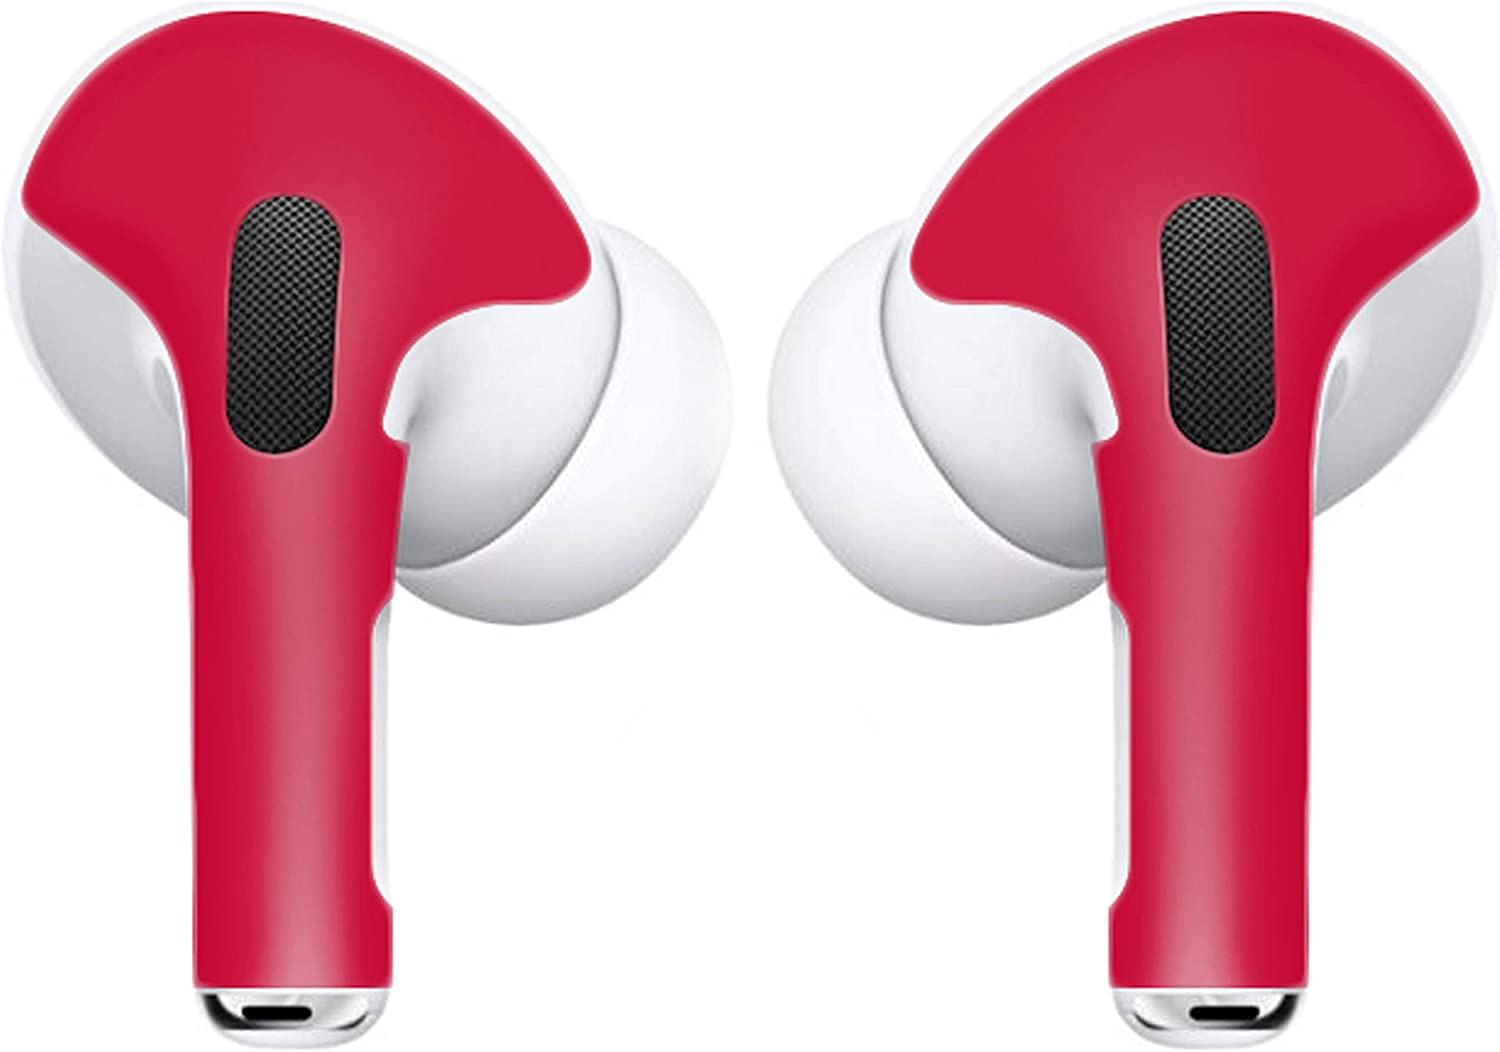 APSkin Skins for Apple AirPod Pro – Vinyl Protective Wraps Stickers Cover Earpods – Air Pods & Ear Pod Compatible Decal for Protection & Customization – Air Pod Pro Accessories – (Red)